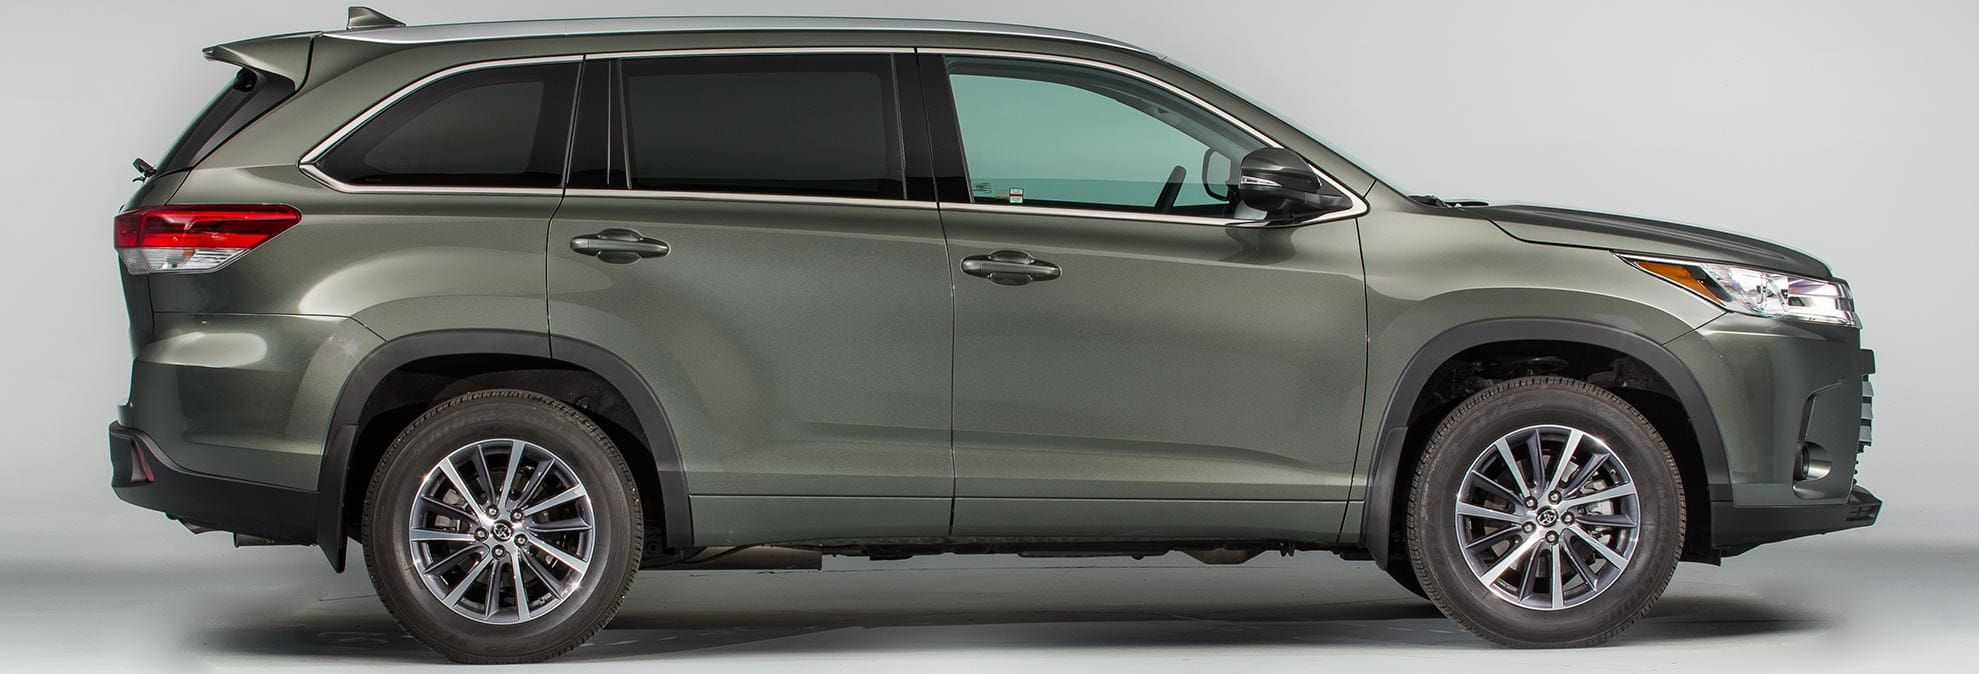 2017 Toyota Highlander and Sienna Transmissions - Consumer Reports